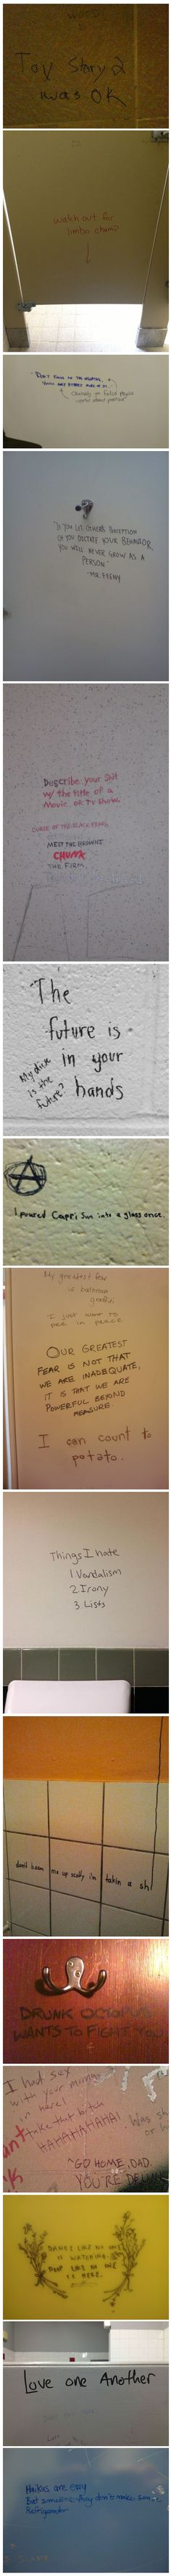 More Examples of Bathroom Stall Words of Wisdom   Mommy Has A Potty MouthMommy Has A Potty Mouth